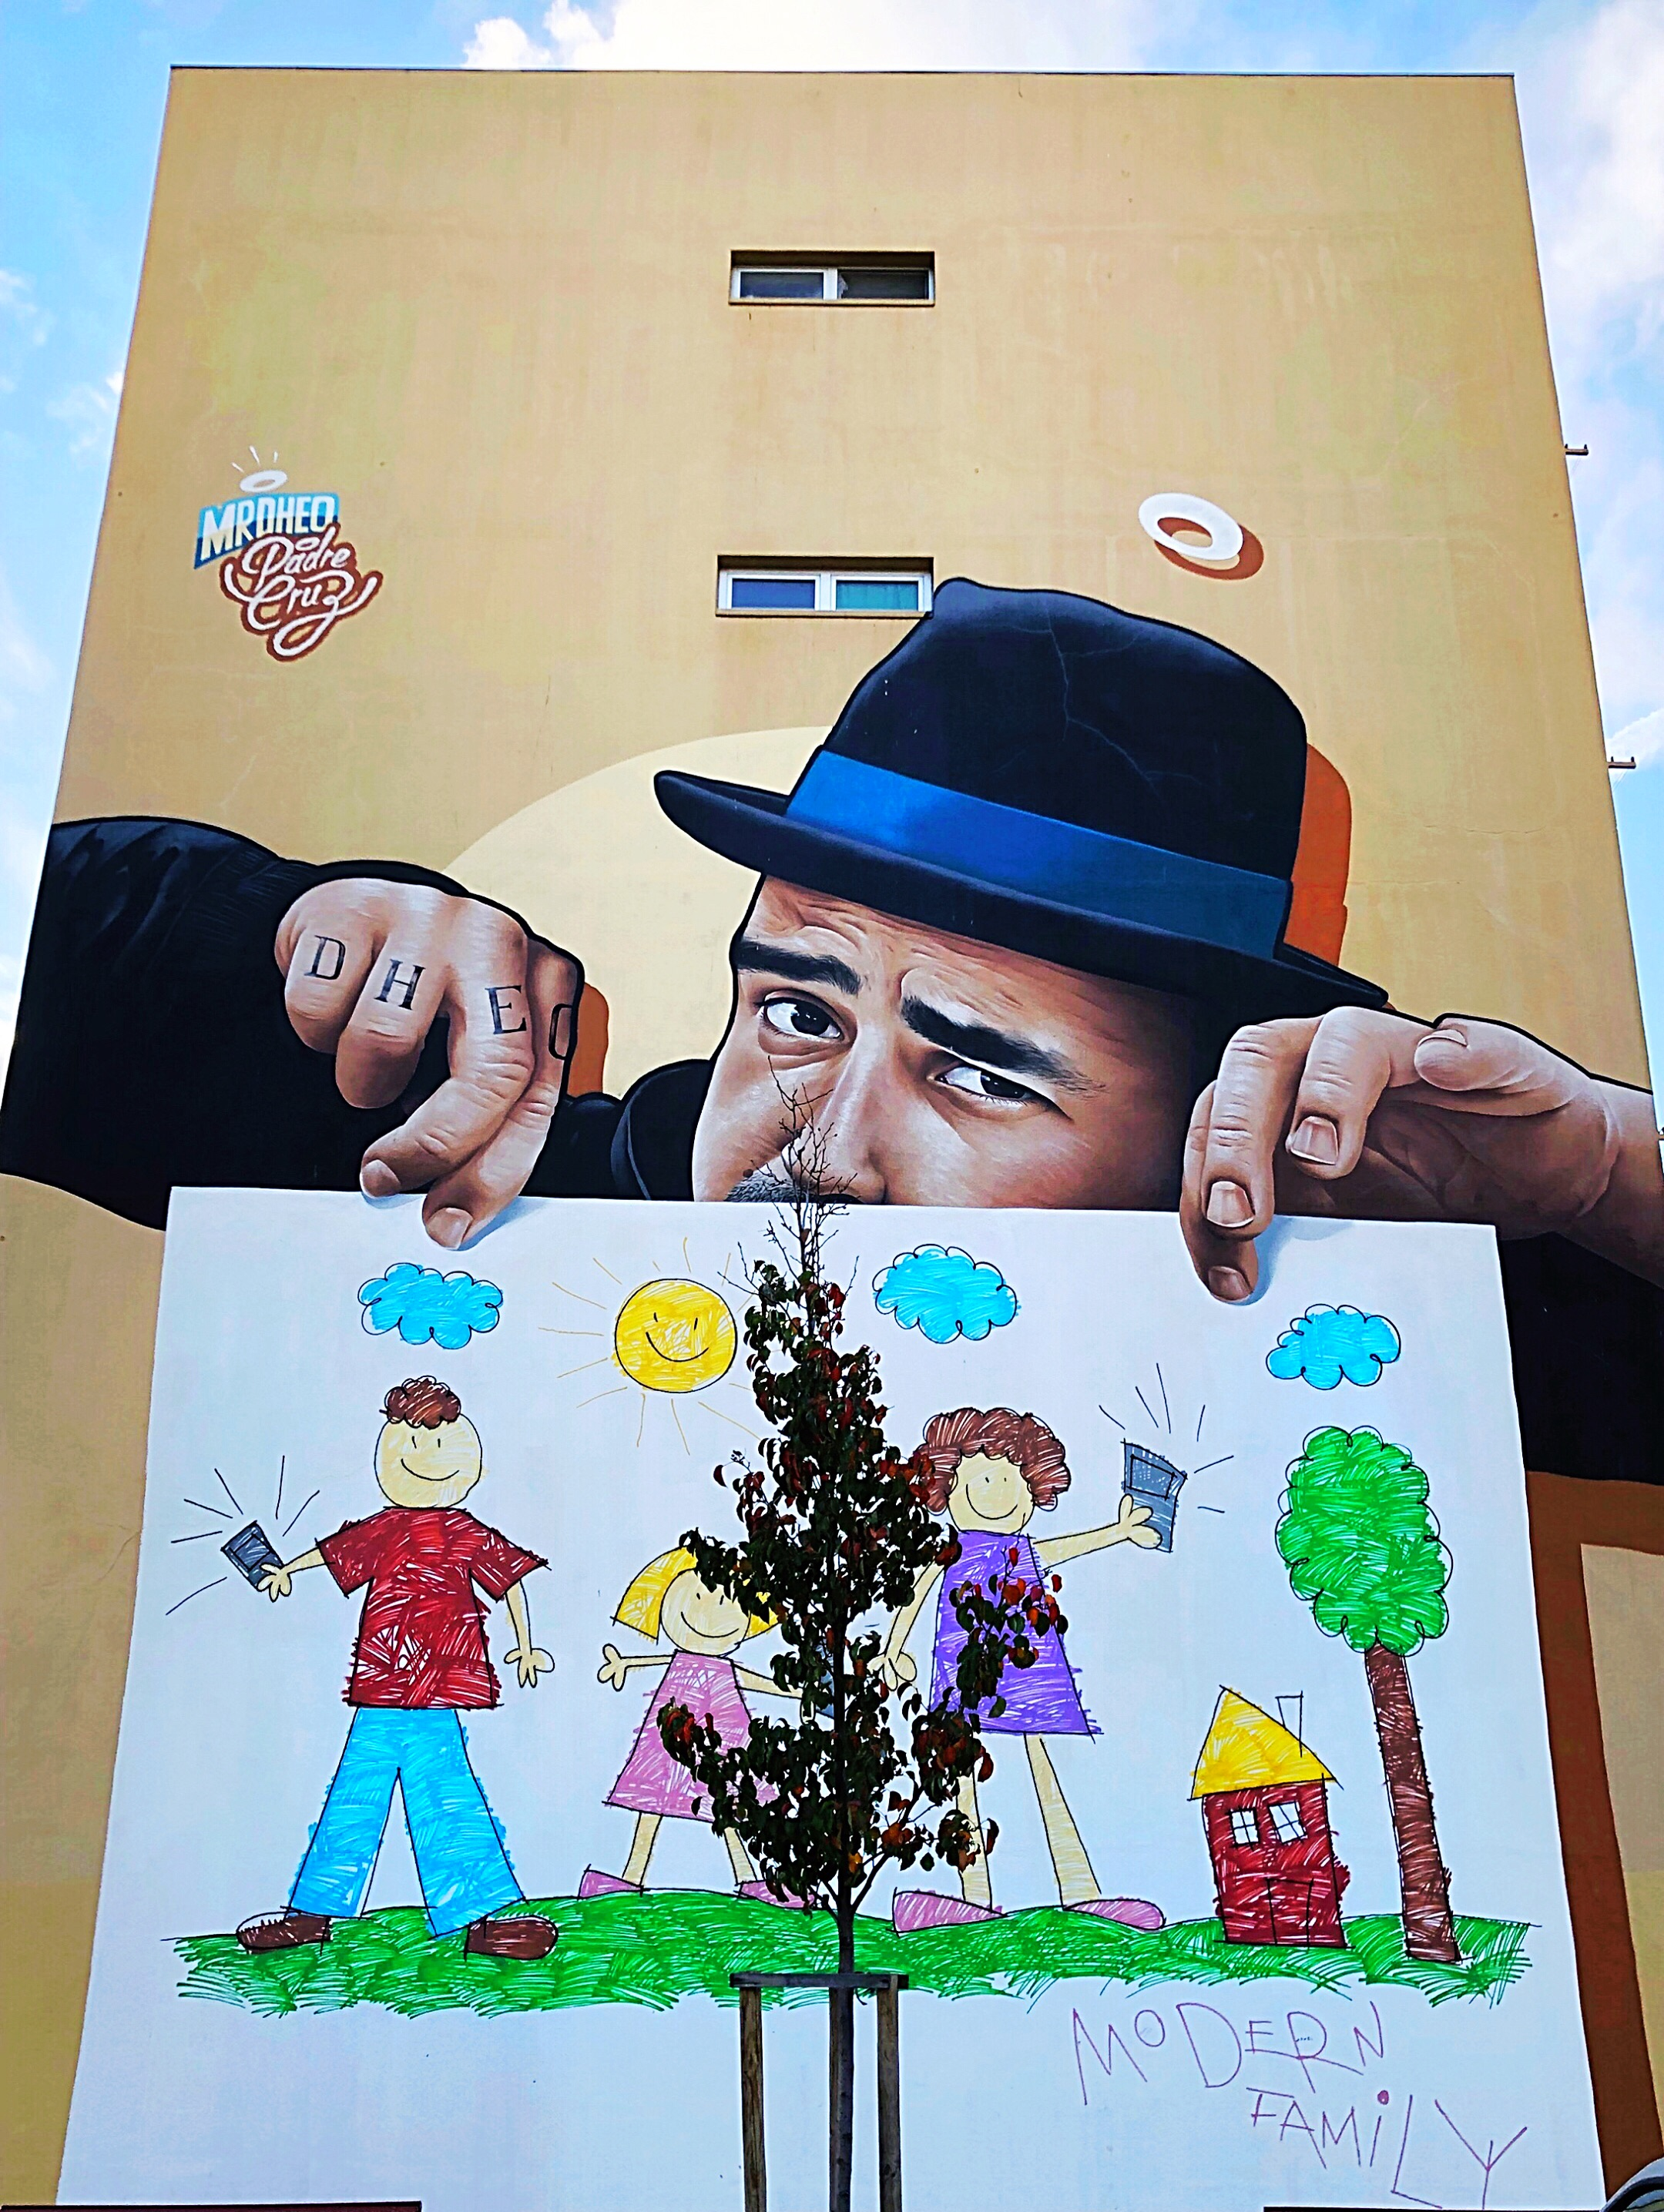 Art by Pariz One and M. Dheo